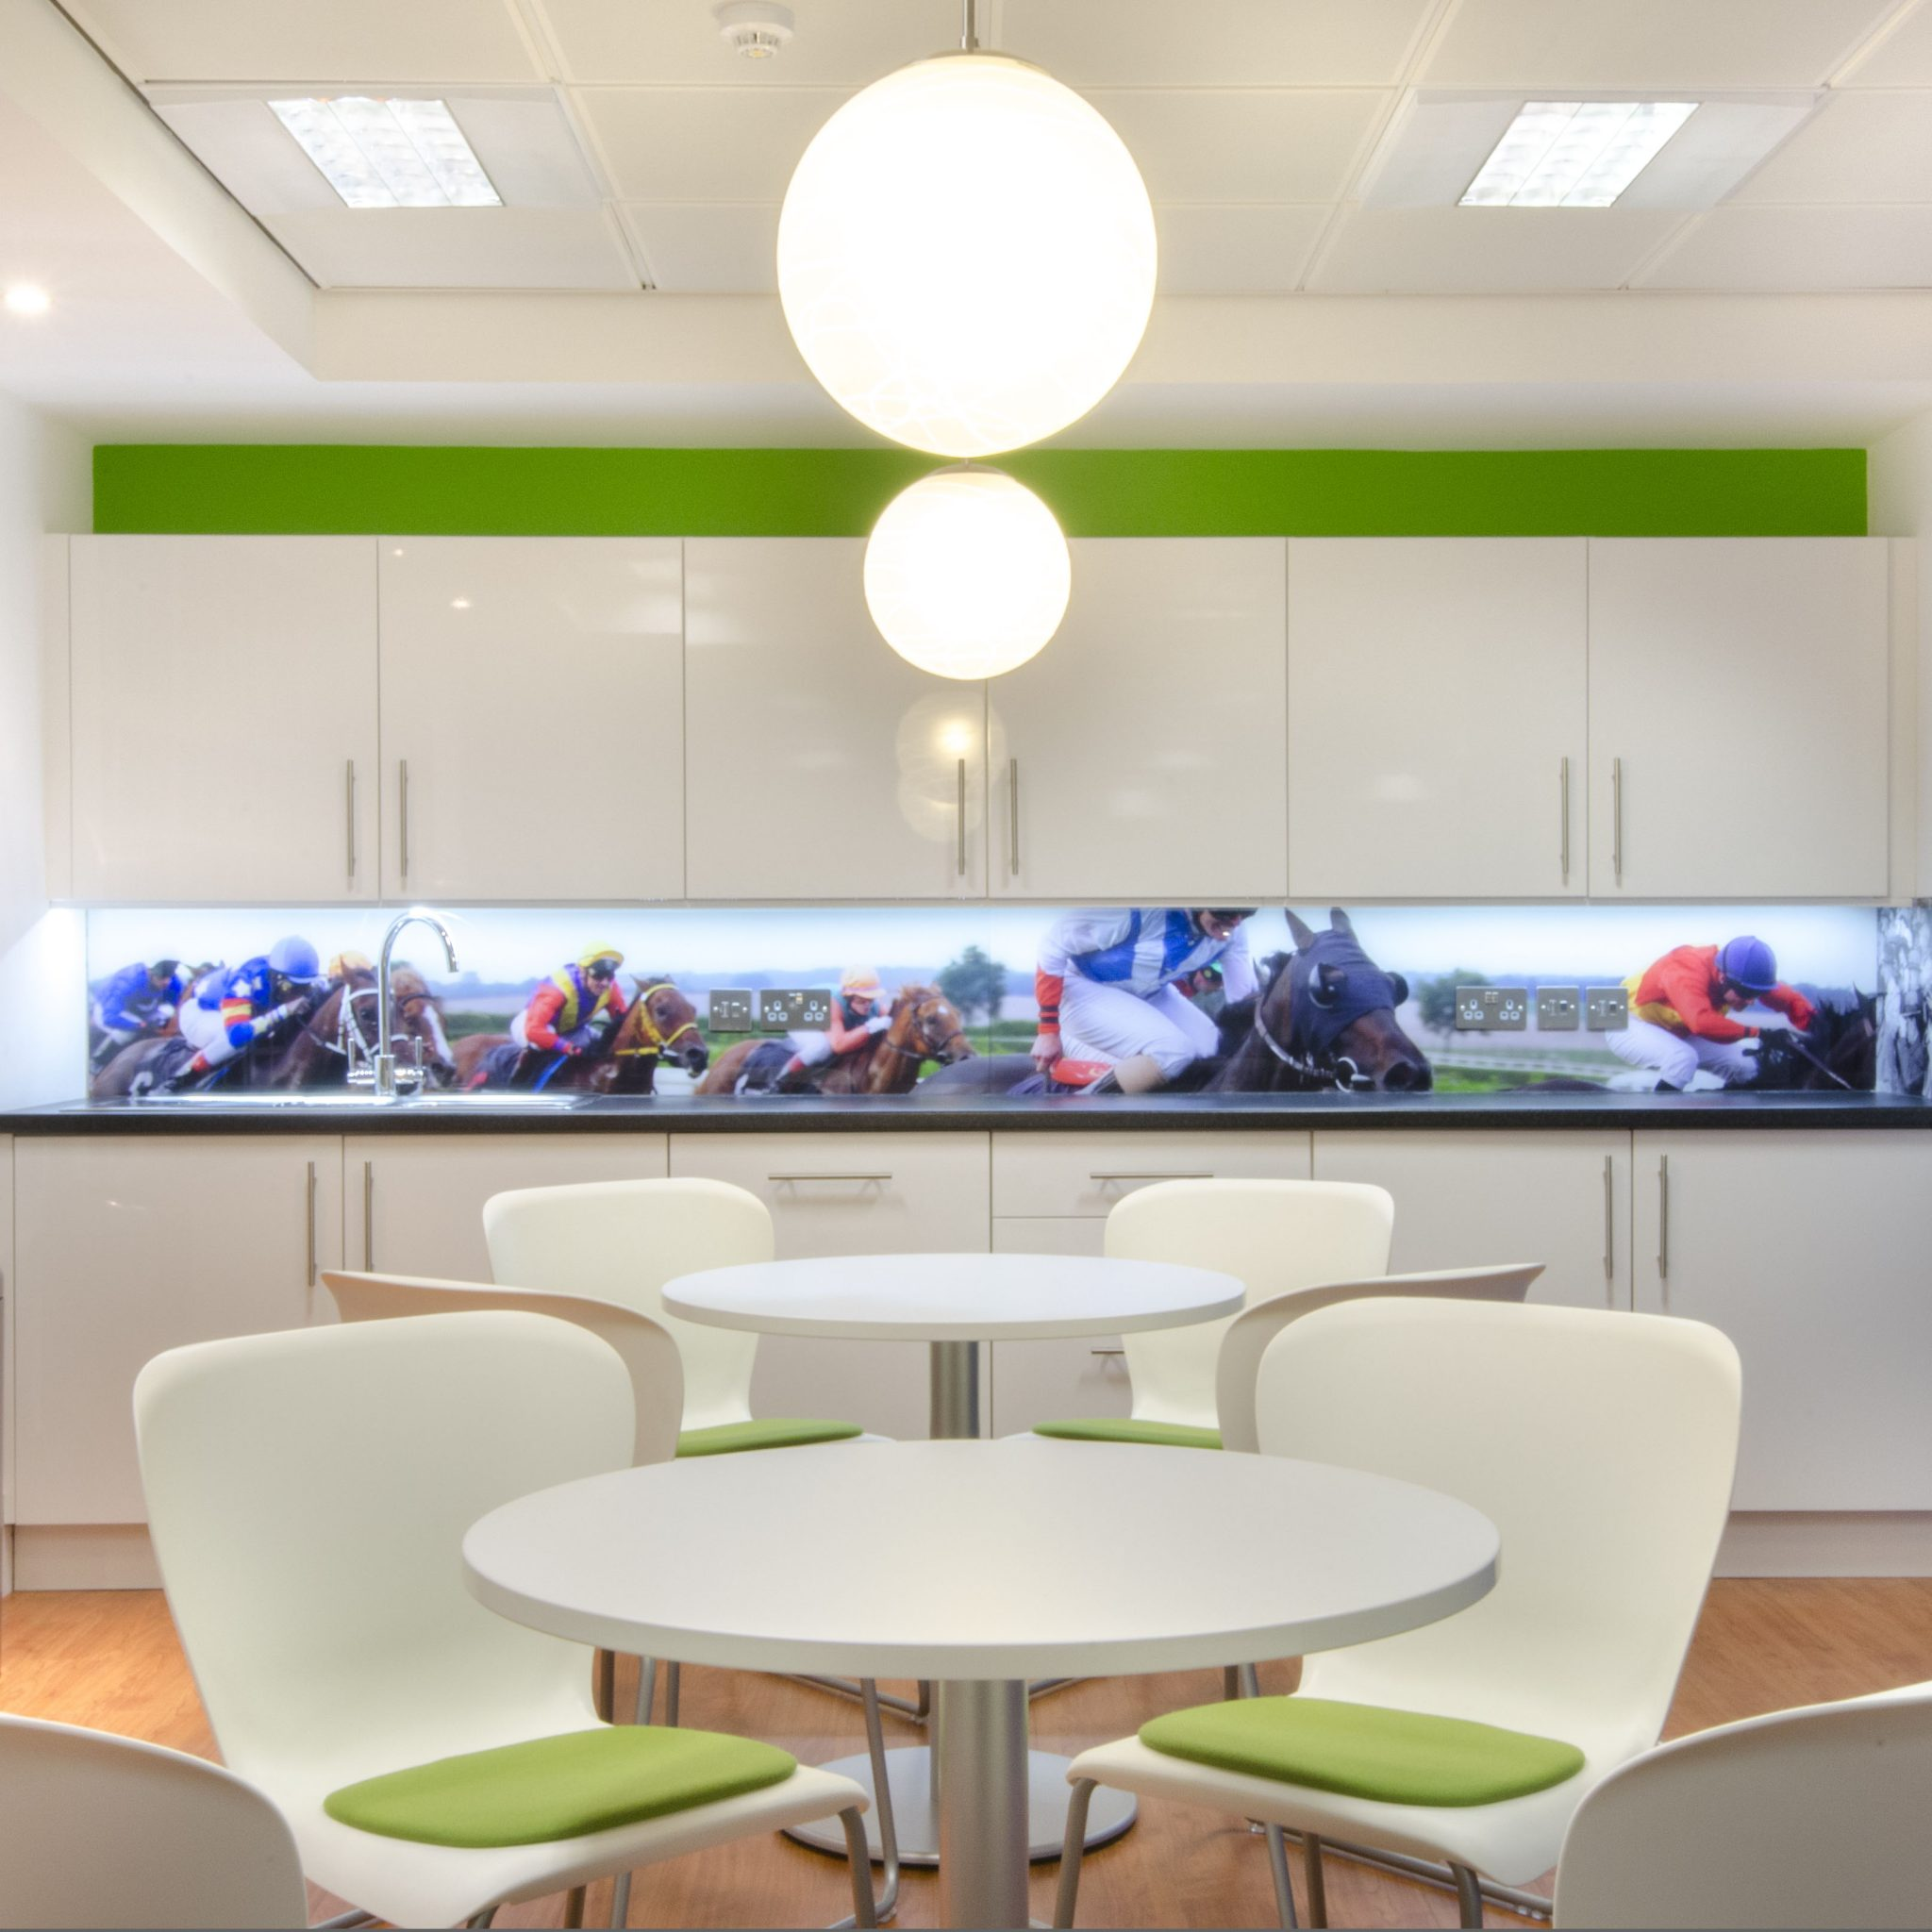 london-office-design-fit-out-mayfair-marine-capital-breakout-back-splash-tea-point-square